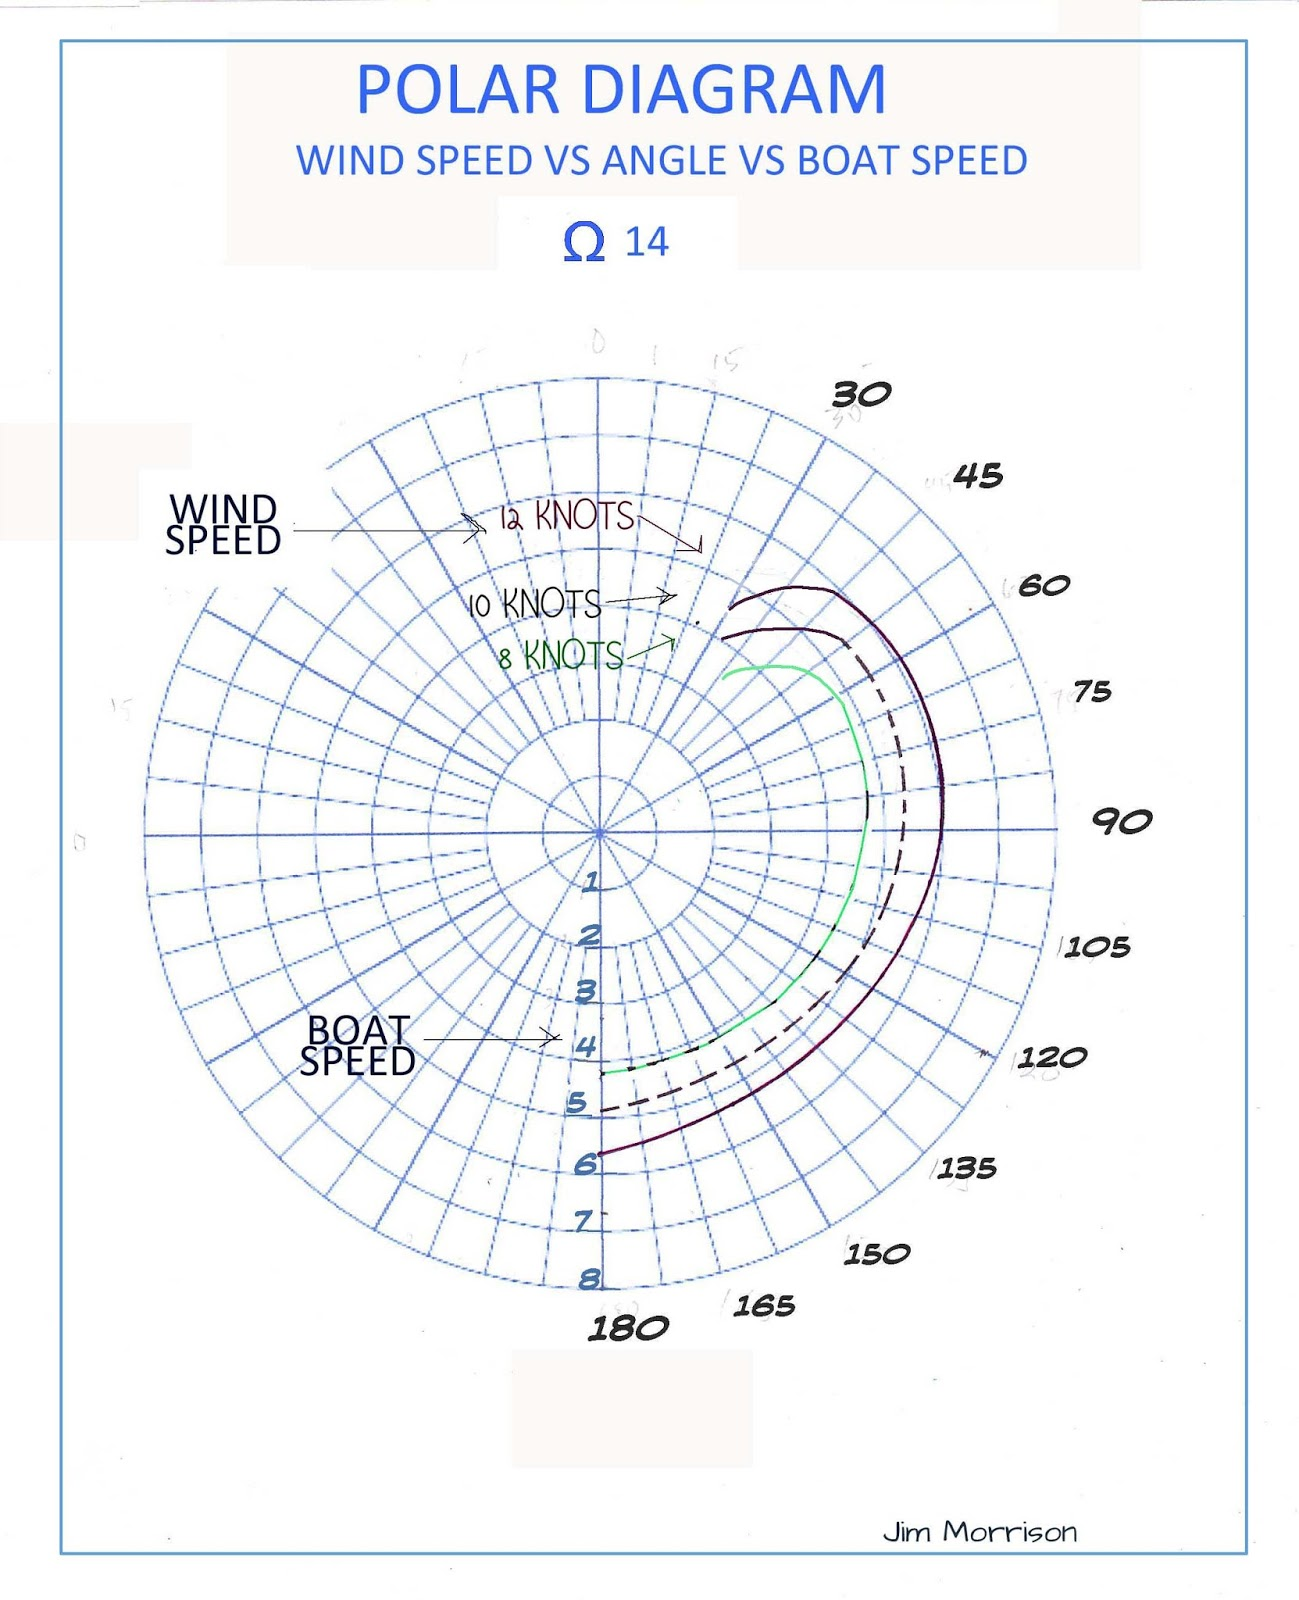 small resolution of omega 14 sailboat omega 14 polar diagram for wind speed vs angle